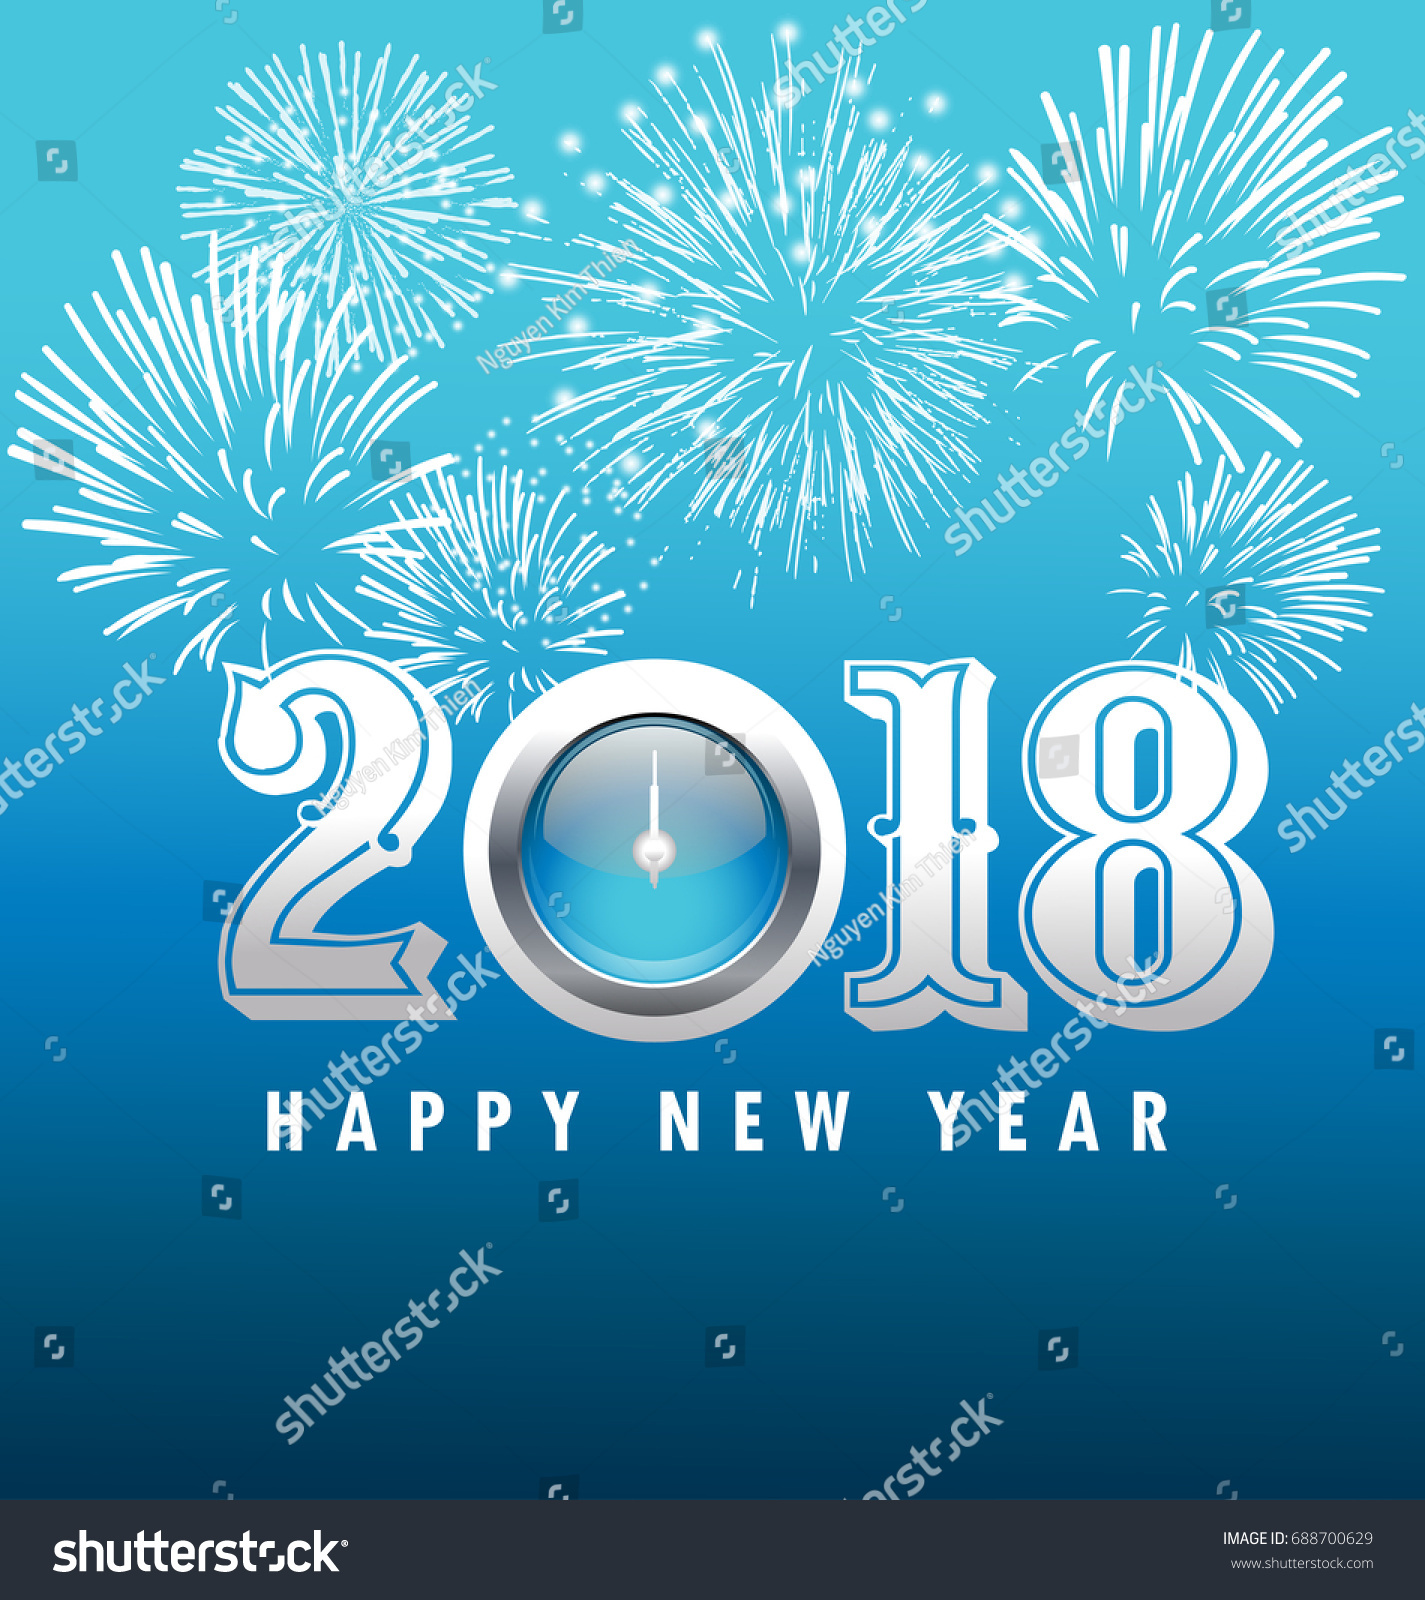 Happy new year 2018 greeting card stock vector royalty free happy new year 2018 greeting card m4hsunfo